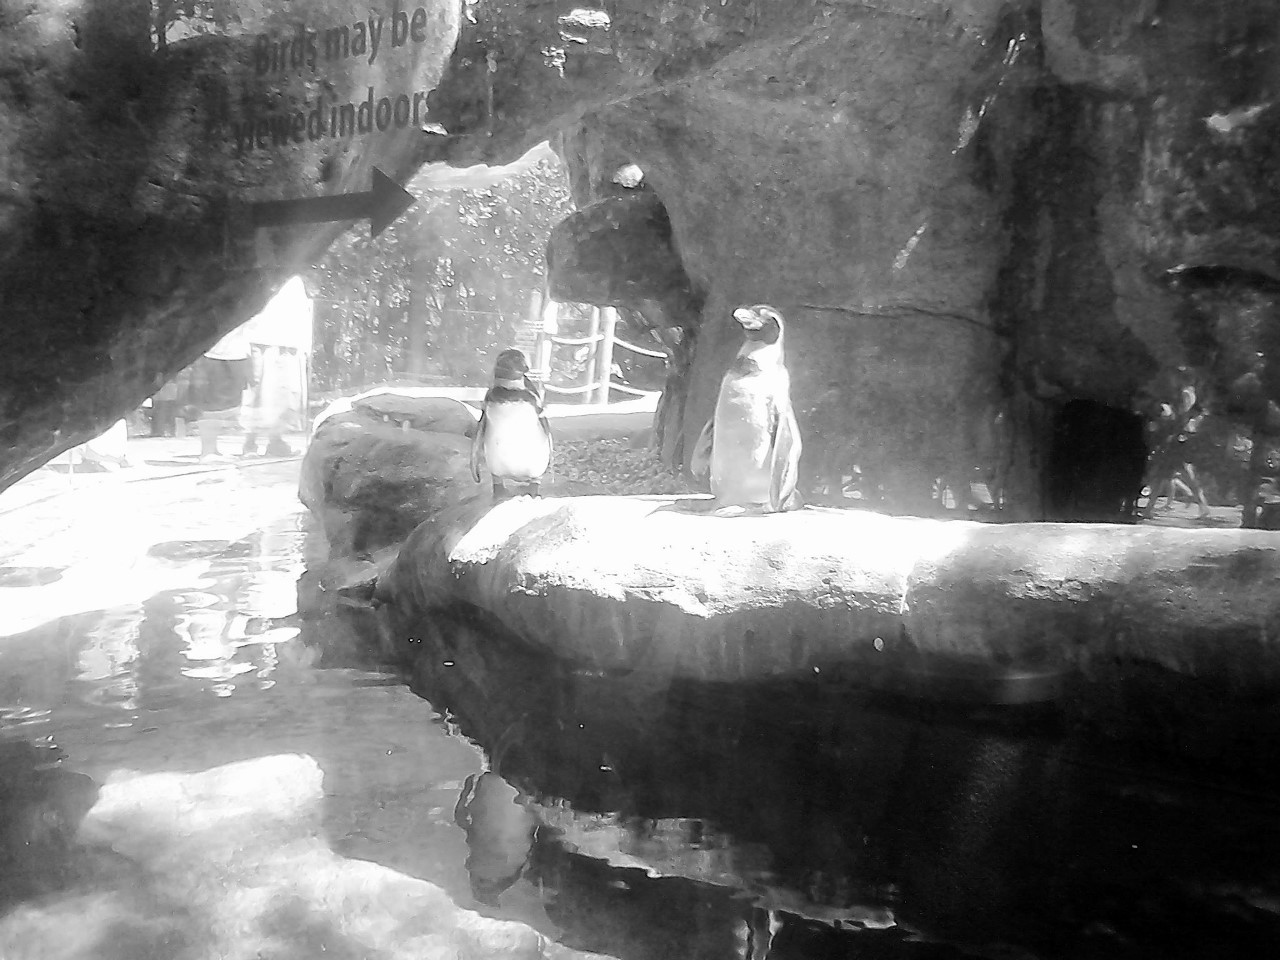 Columbus Zoo BW 5-31-2014 2-42-03 PM